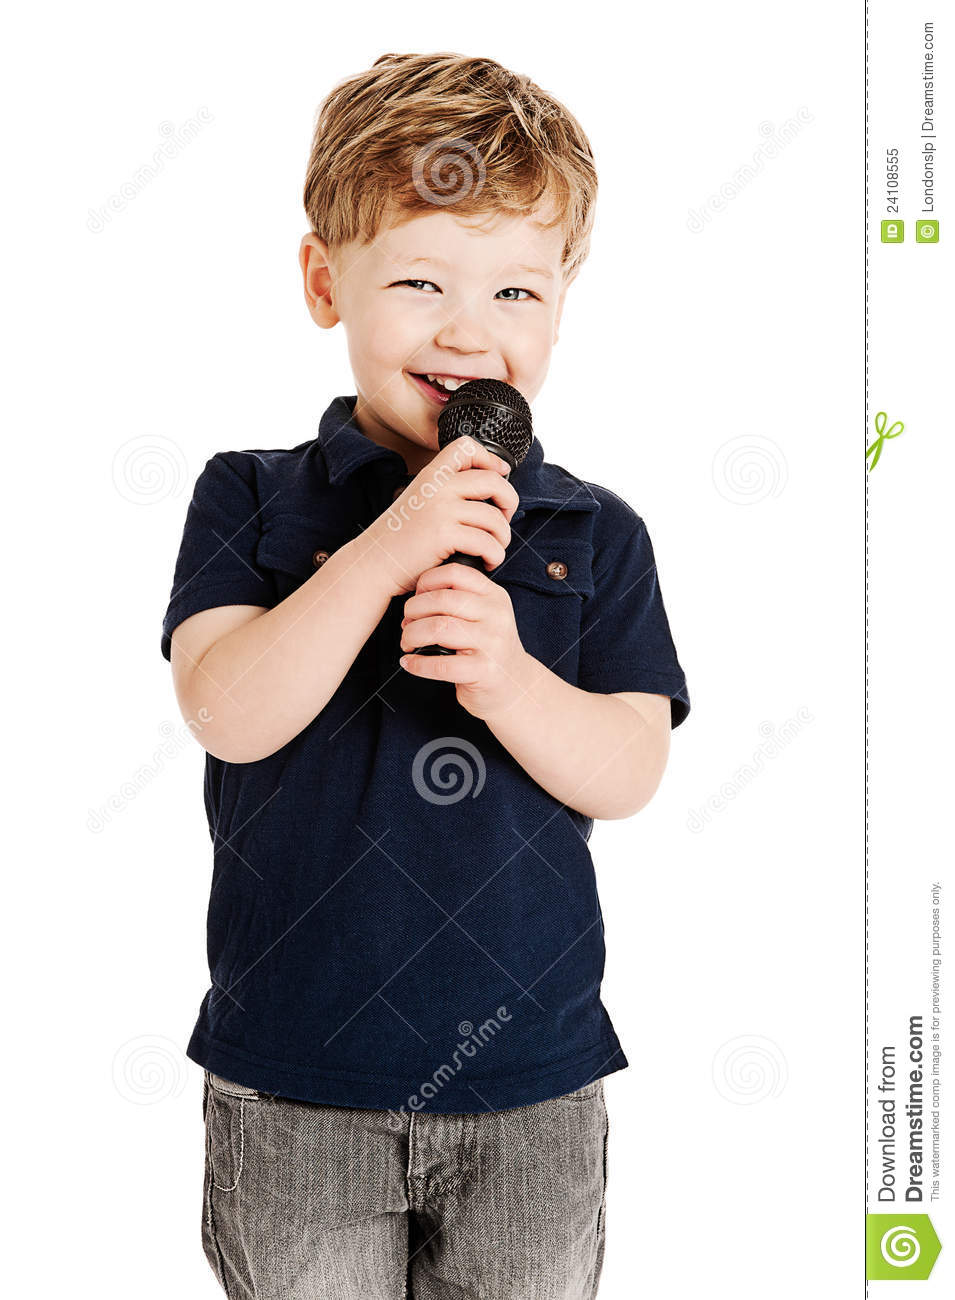 Infant Child Learning Center Cute Boy Singing Royalty Free Stock Photo Image 24108555